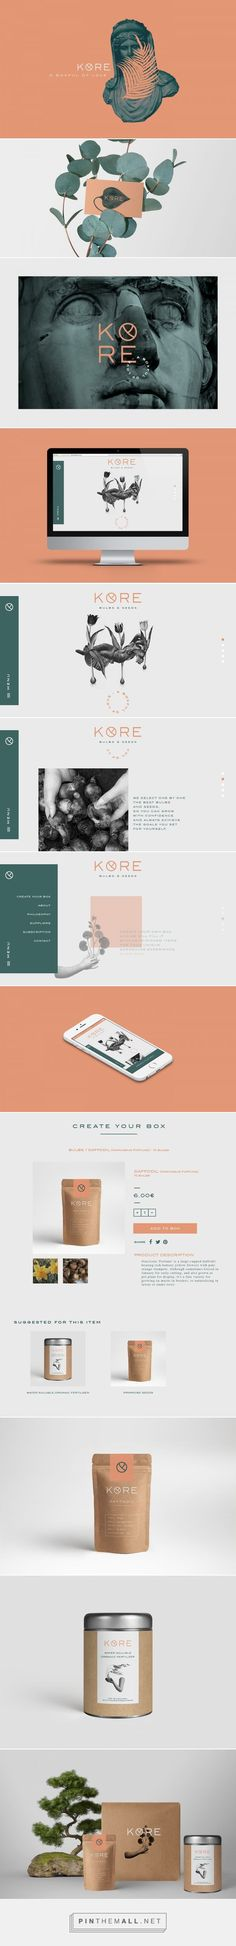 KORE Bulbs and Seeds Online Boutique Branding by Francesco Santese